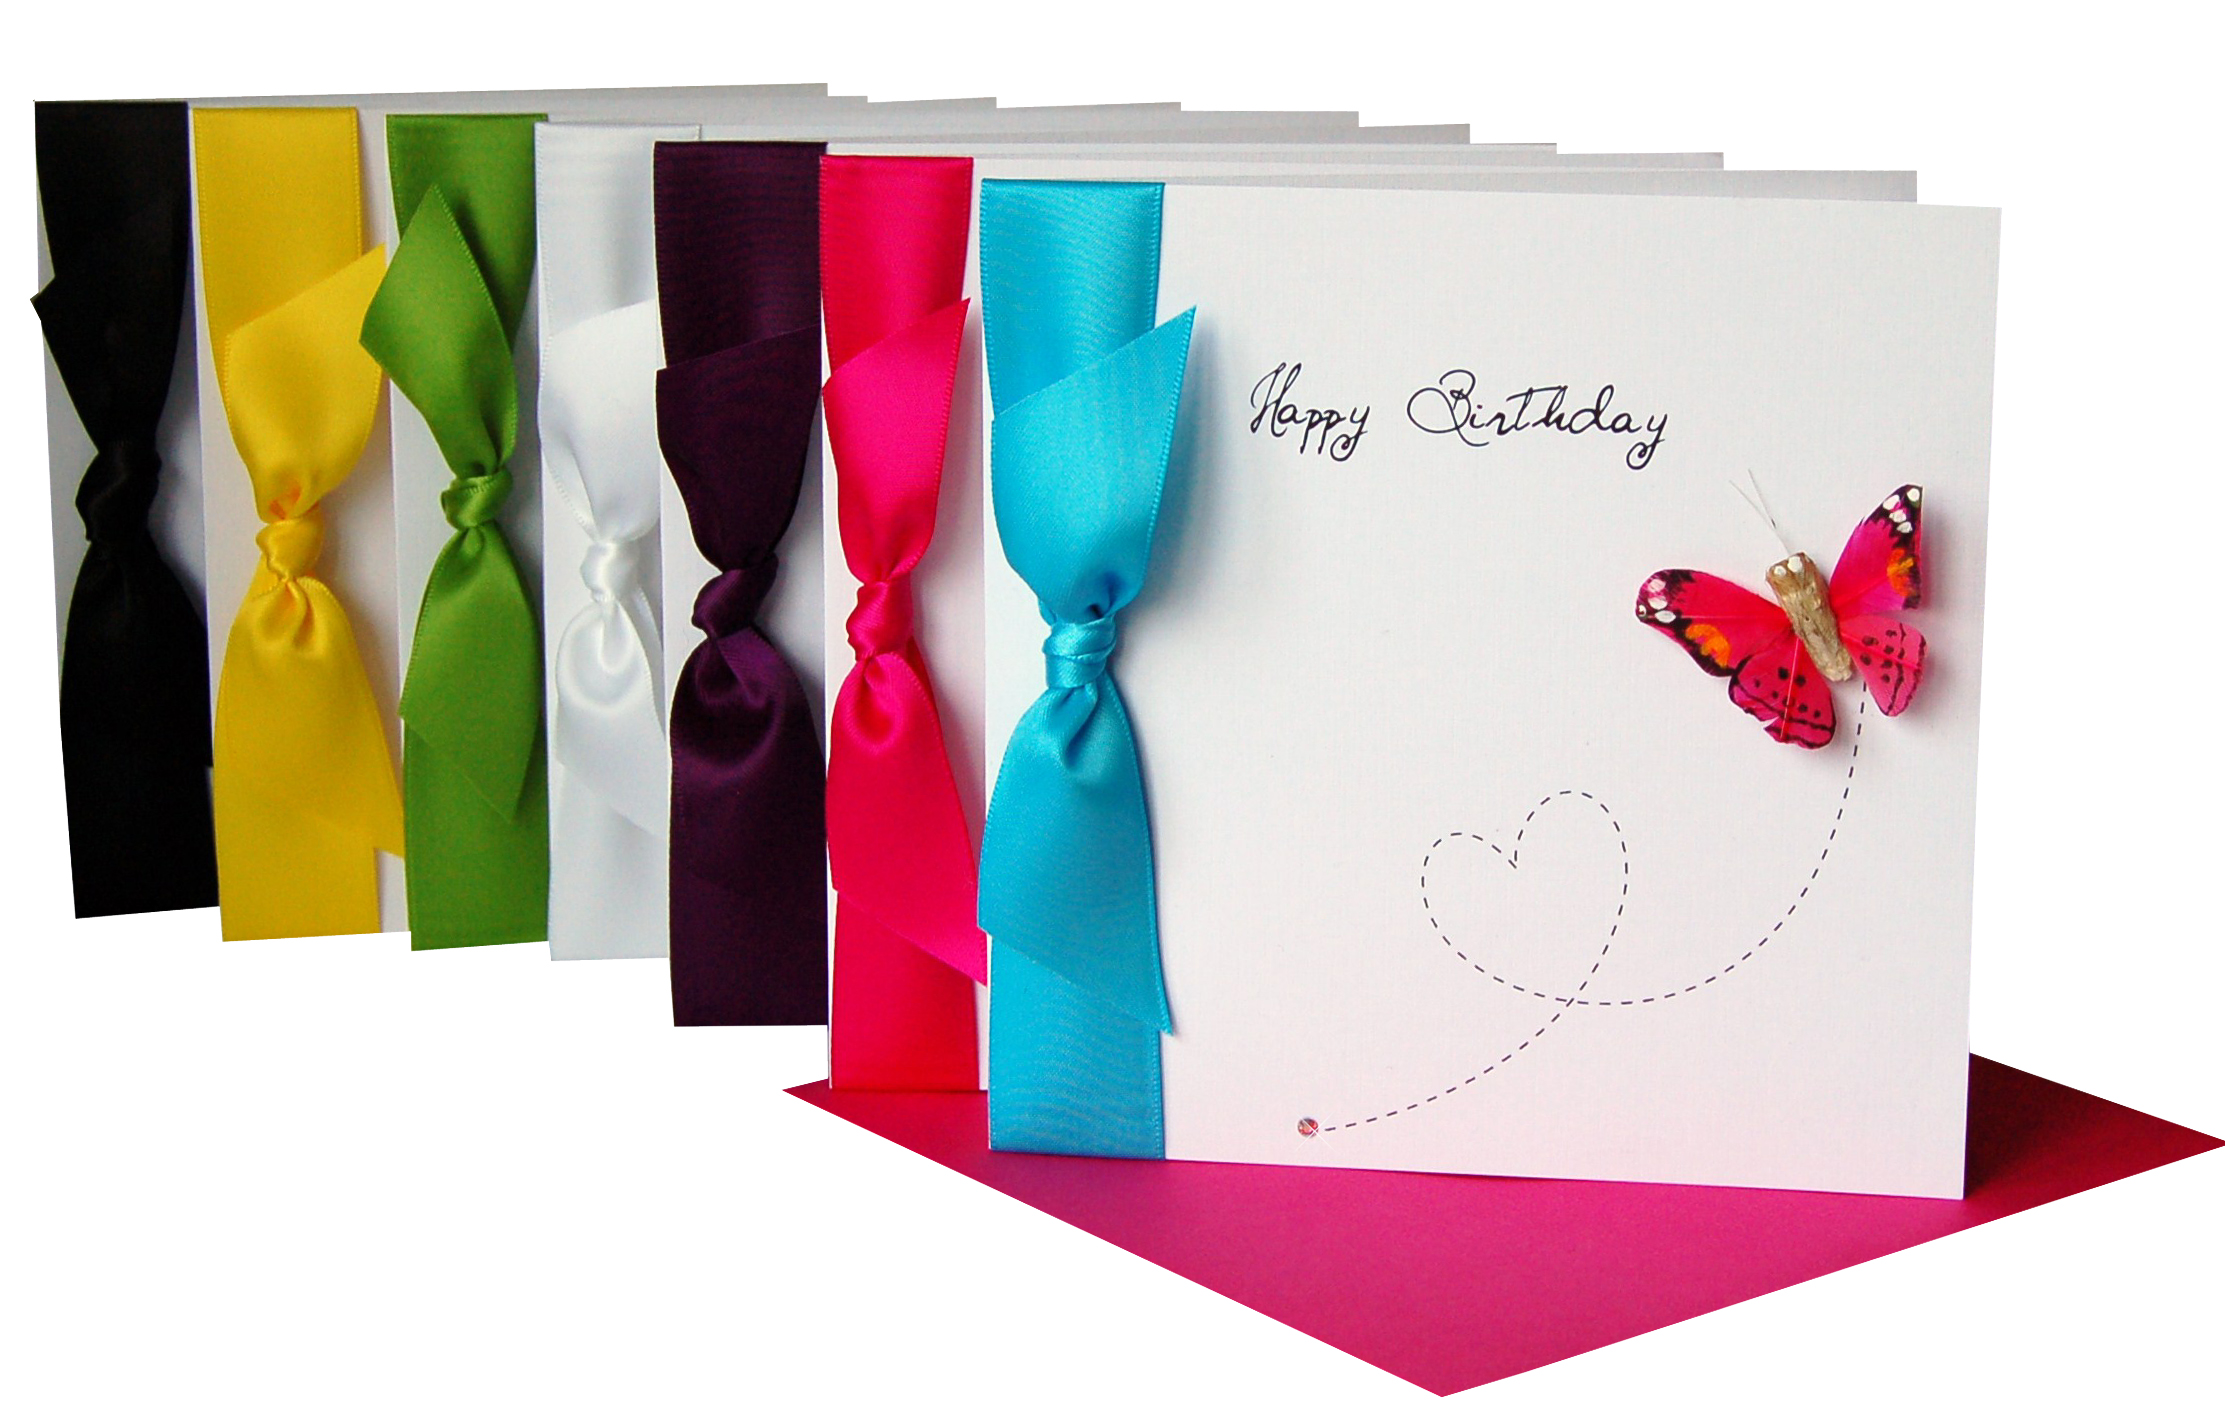 Creative Ideas For Making Birthday Cards Part - 24: Birthday Card Design Ideas Gallery